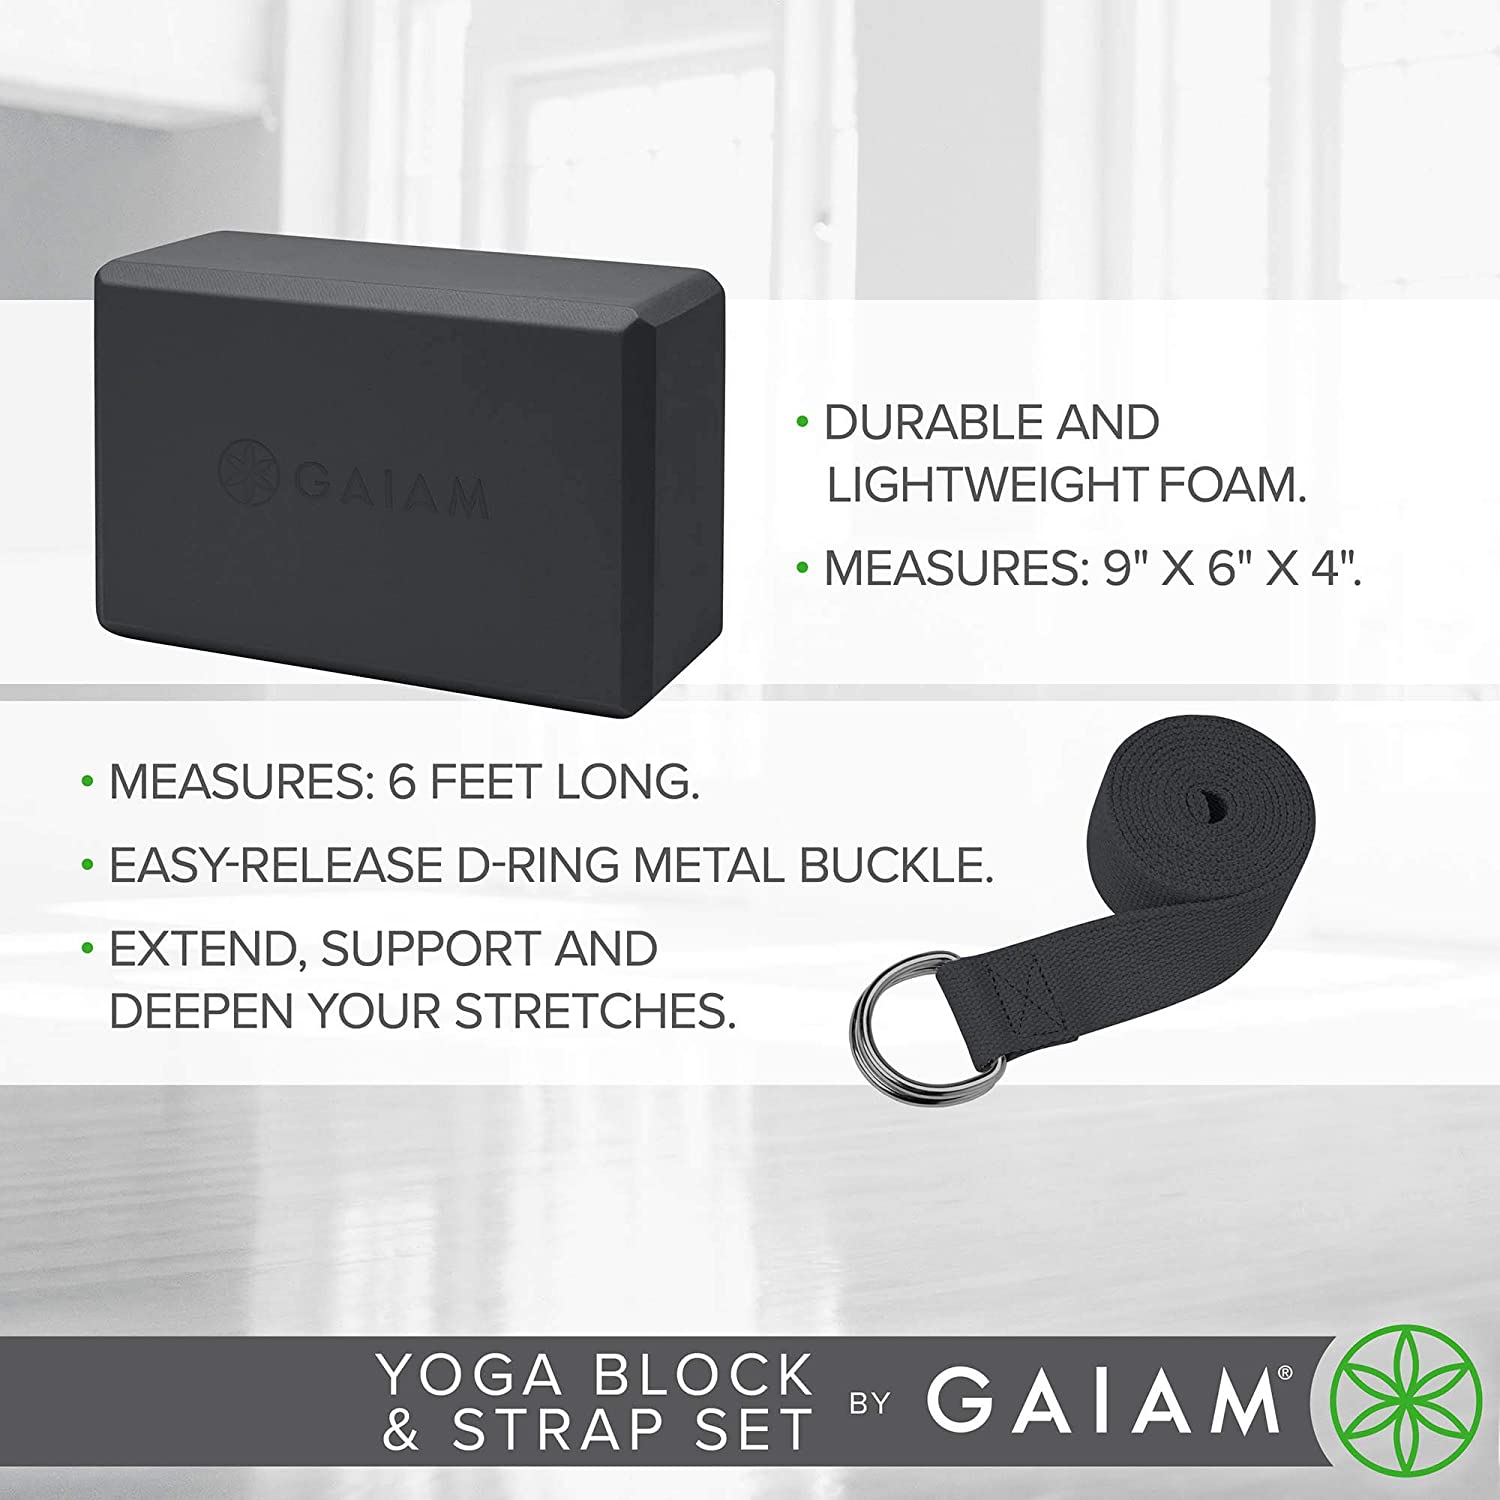 Amazon.com: Gaiam Yoga correa/bloque Combo, Negro: Sports ...